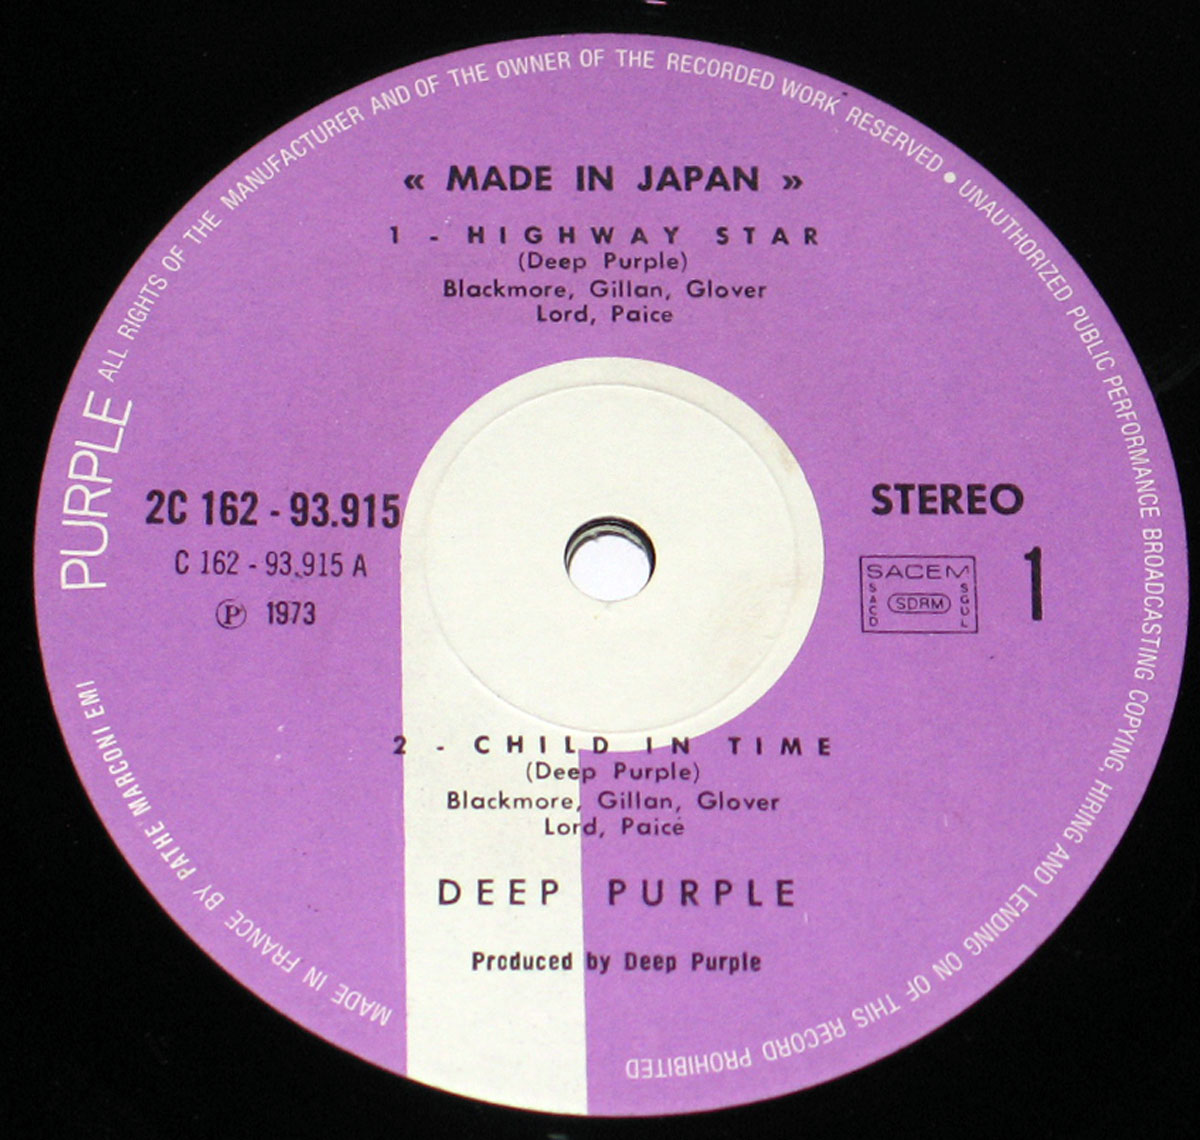 High Resolution # Photo DEEP PURPLE Made in Japan France